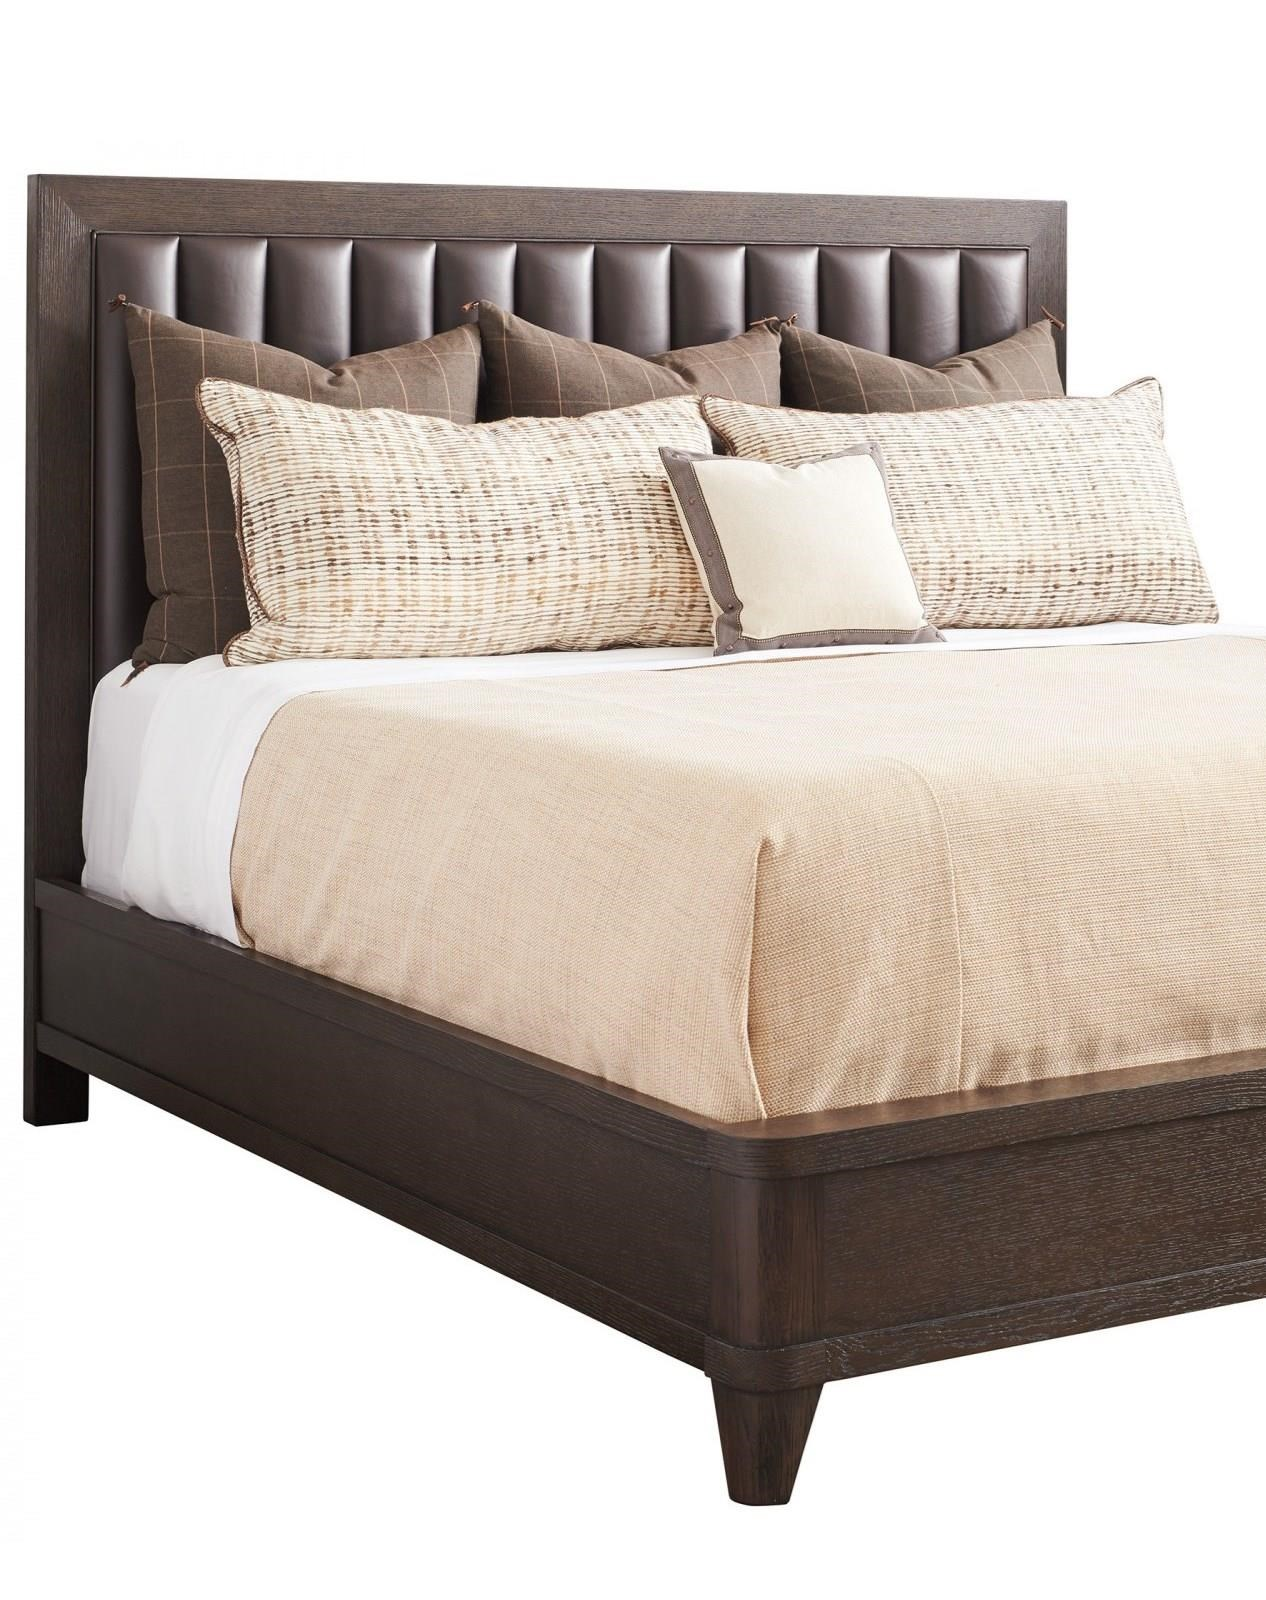 Park City Talisker King Upholstered Headboard  by Barclay Butera at Baer's Furniture